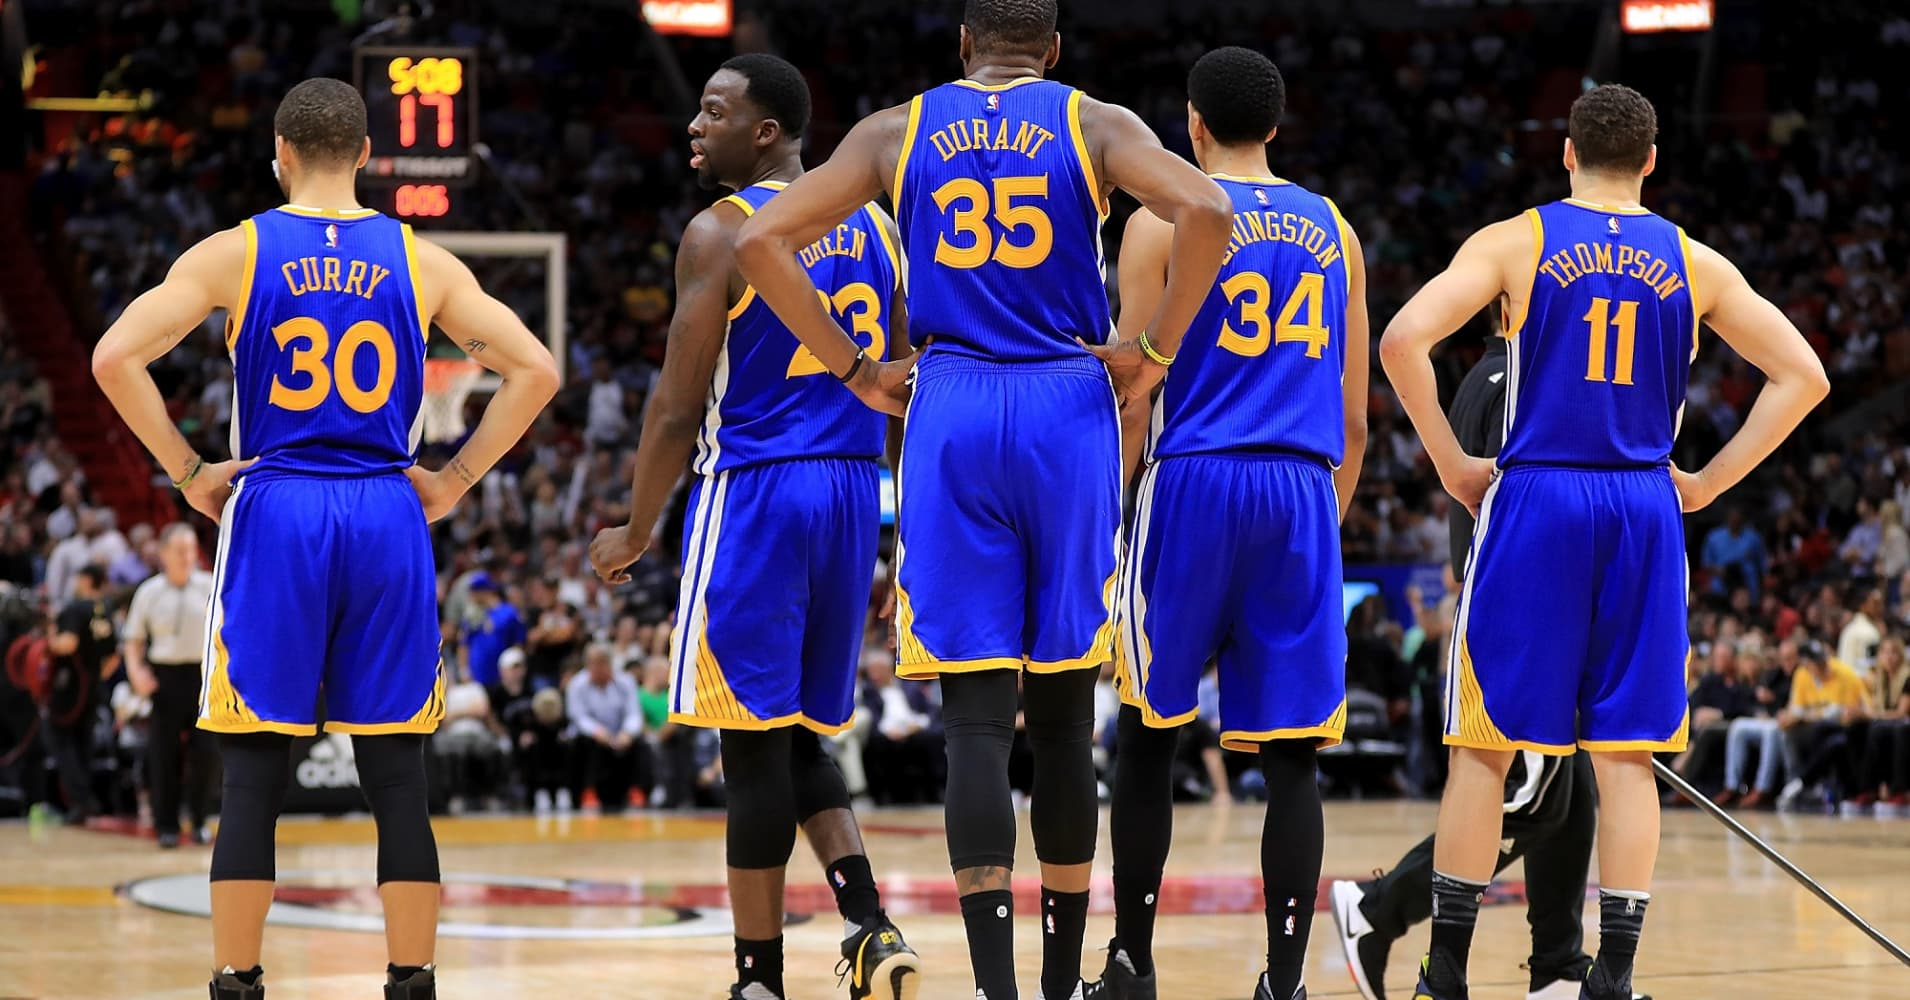 The Golden State Warriors line up during a game against the Miami Heat.